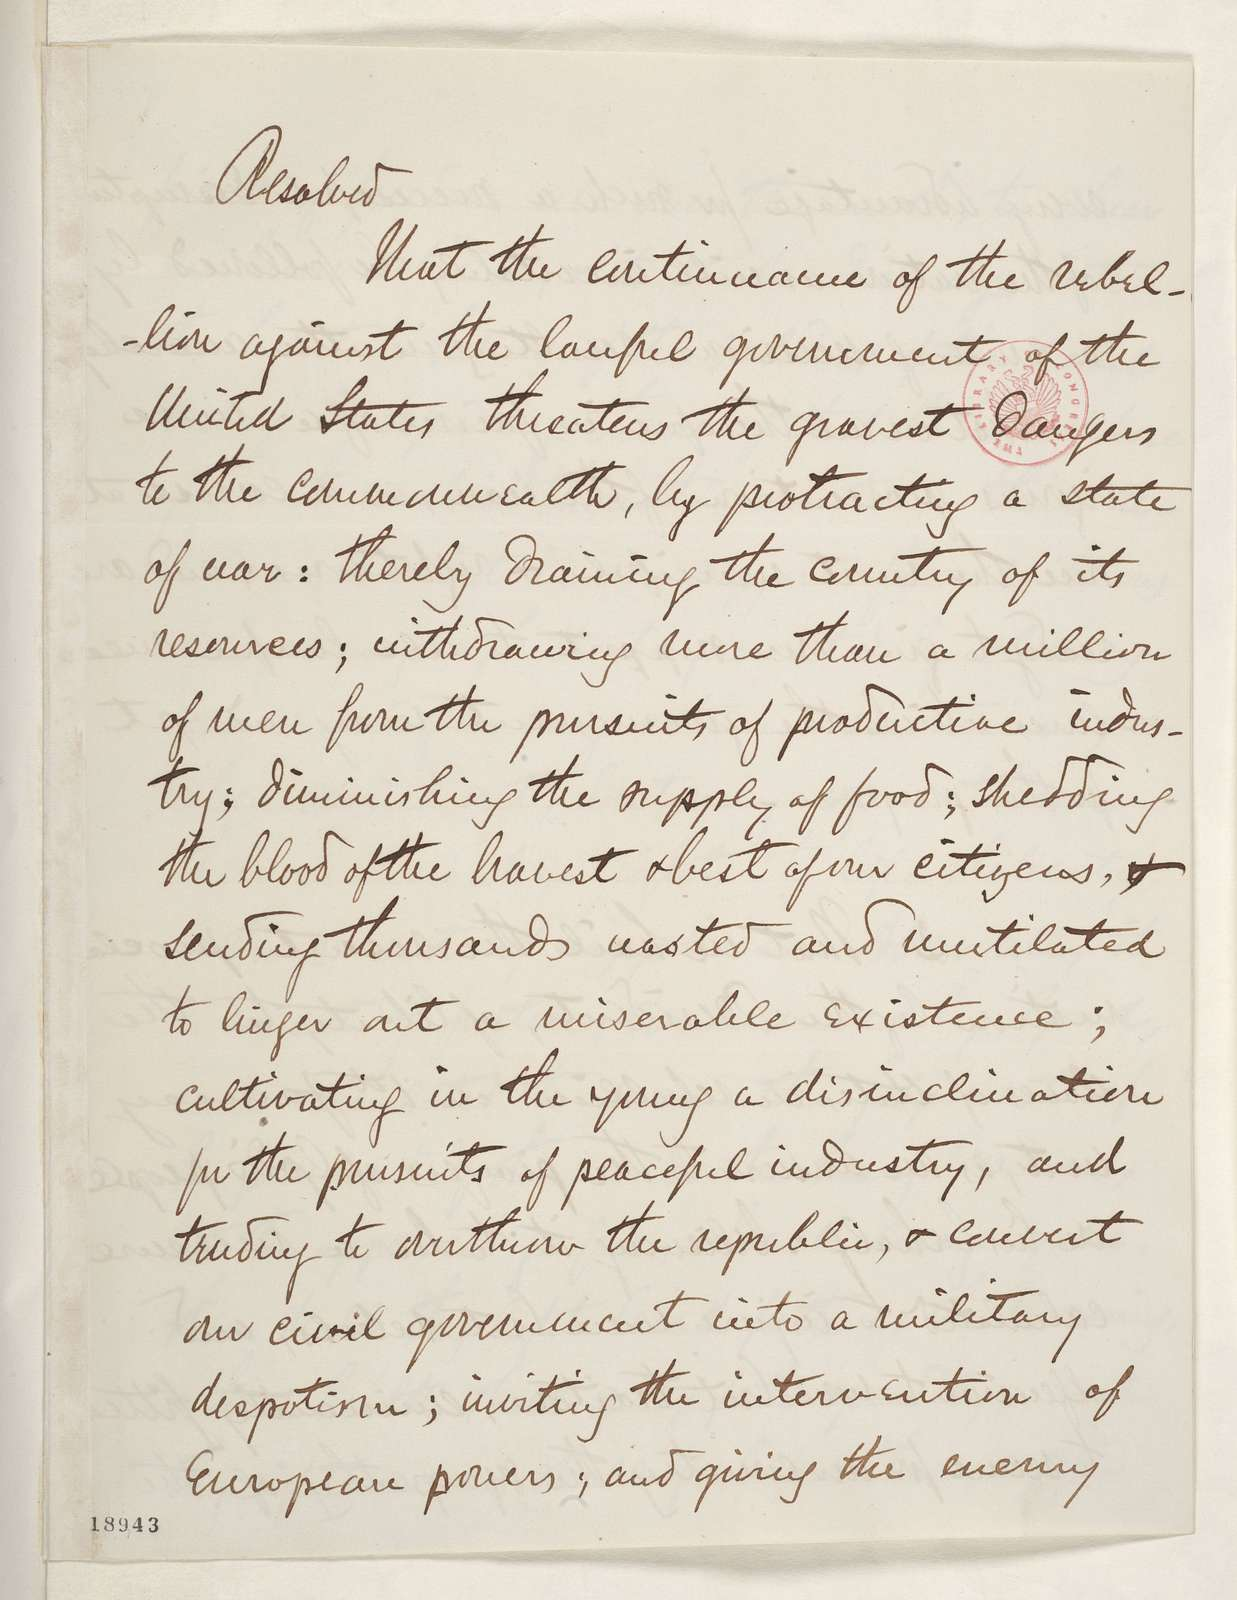 Abraham Lincoln papers: Series 1. General Correspondence. 1833-1916: Robert Patterson to Abraham Lincoln, Wednesday, October 08, 1862 (Sends resolutions concerning Emancipation Proclamation from ministers of Chicago Reformed Presbytery)